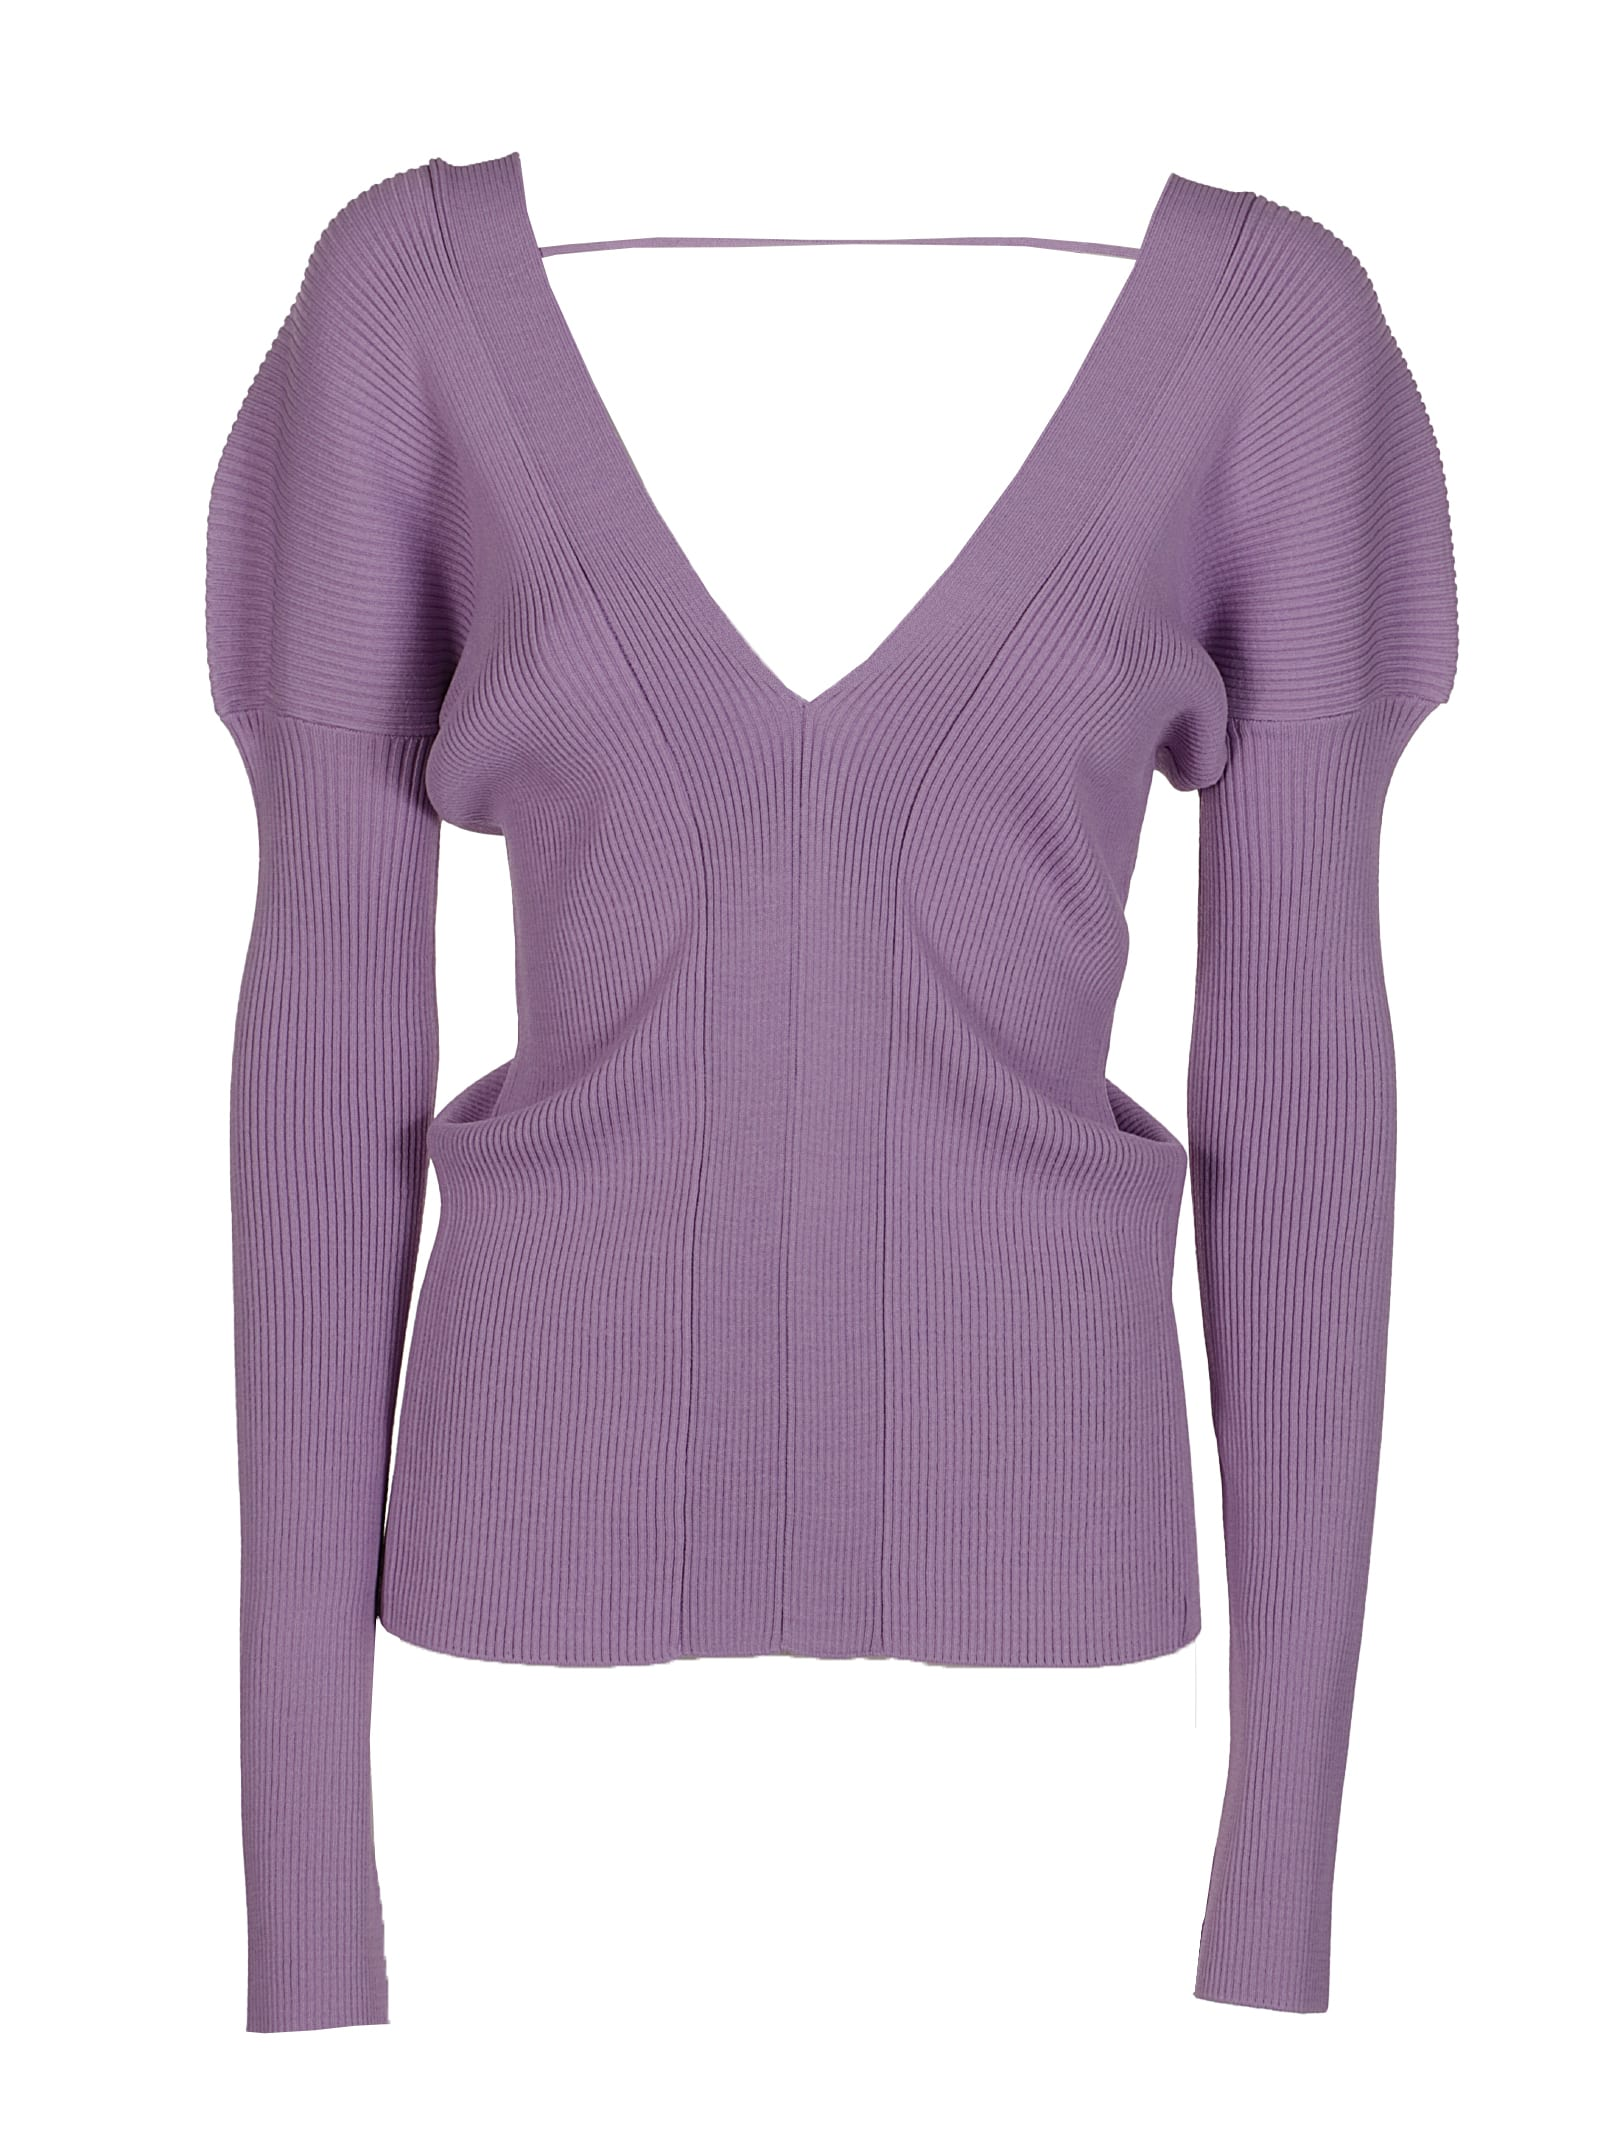 Emily Knot Back Top